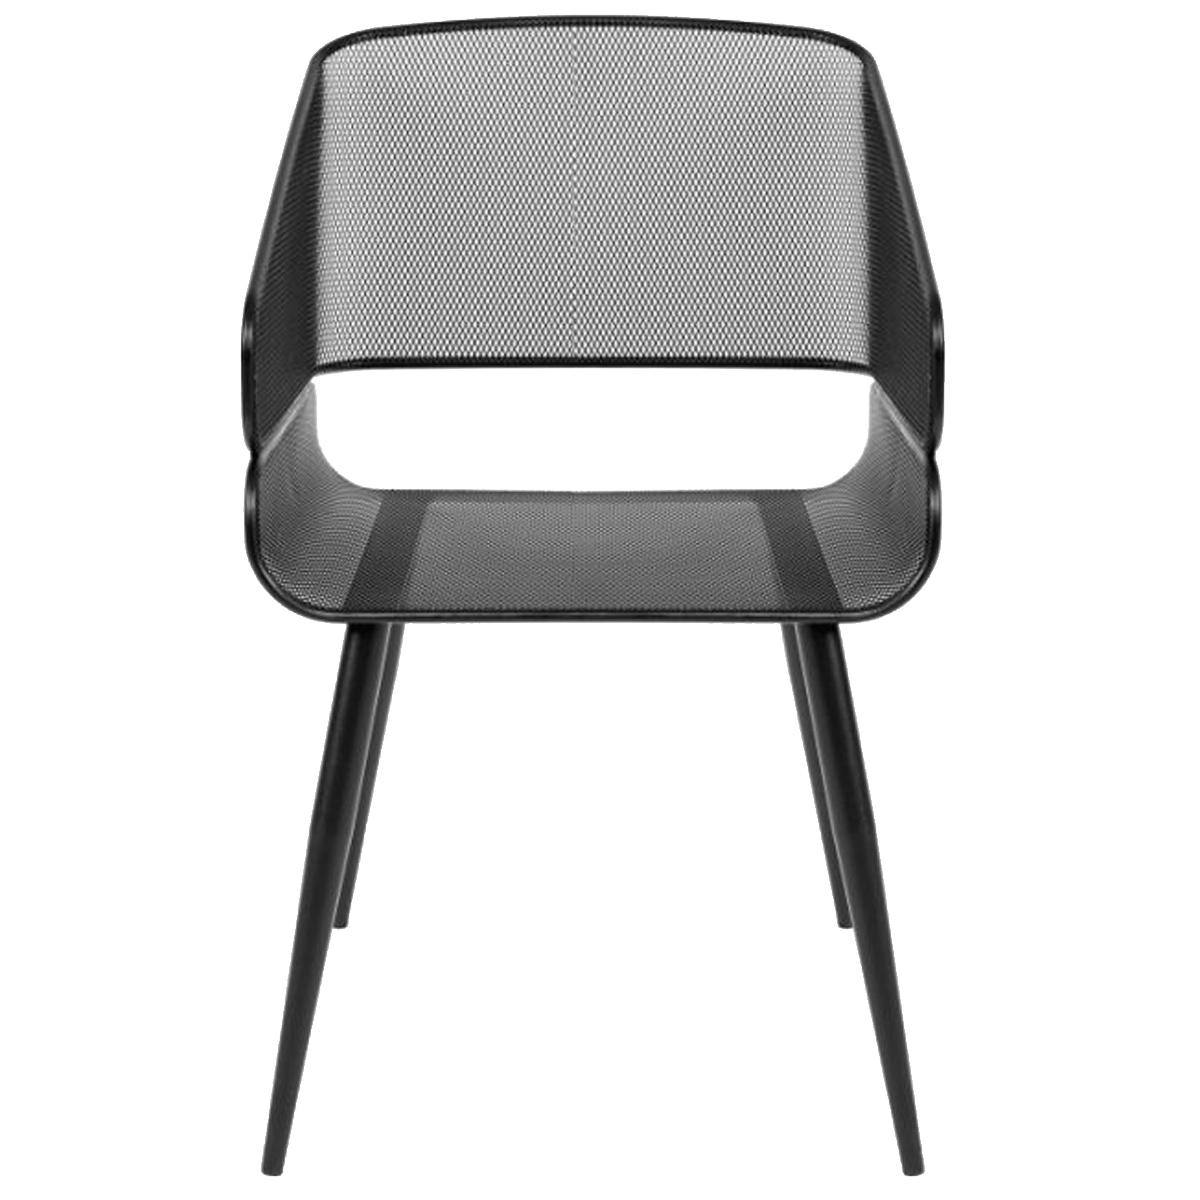 NEO-100350E-Metal-Armchair-With-Conical-Leg-3